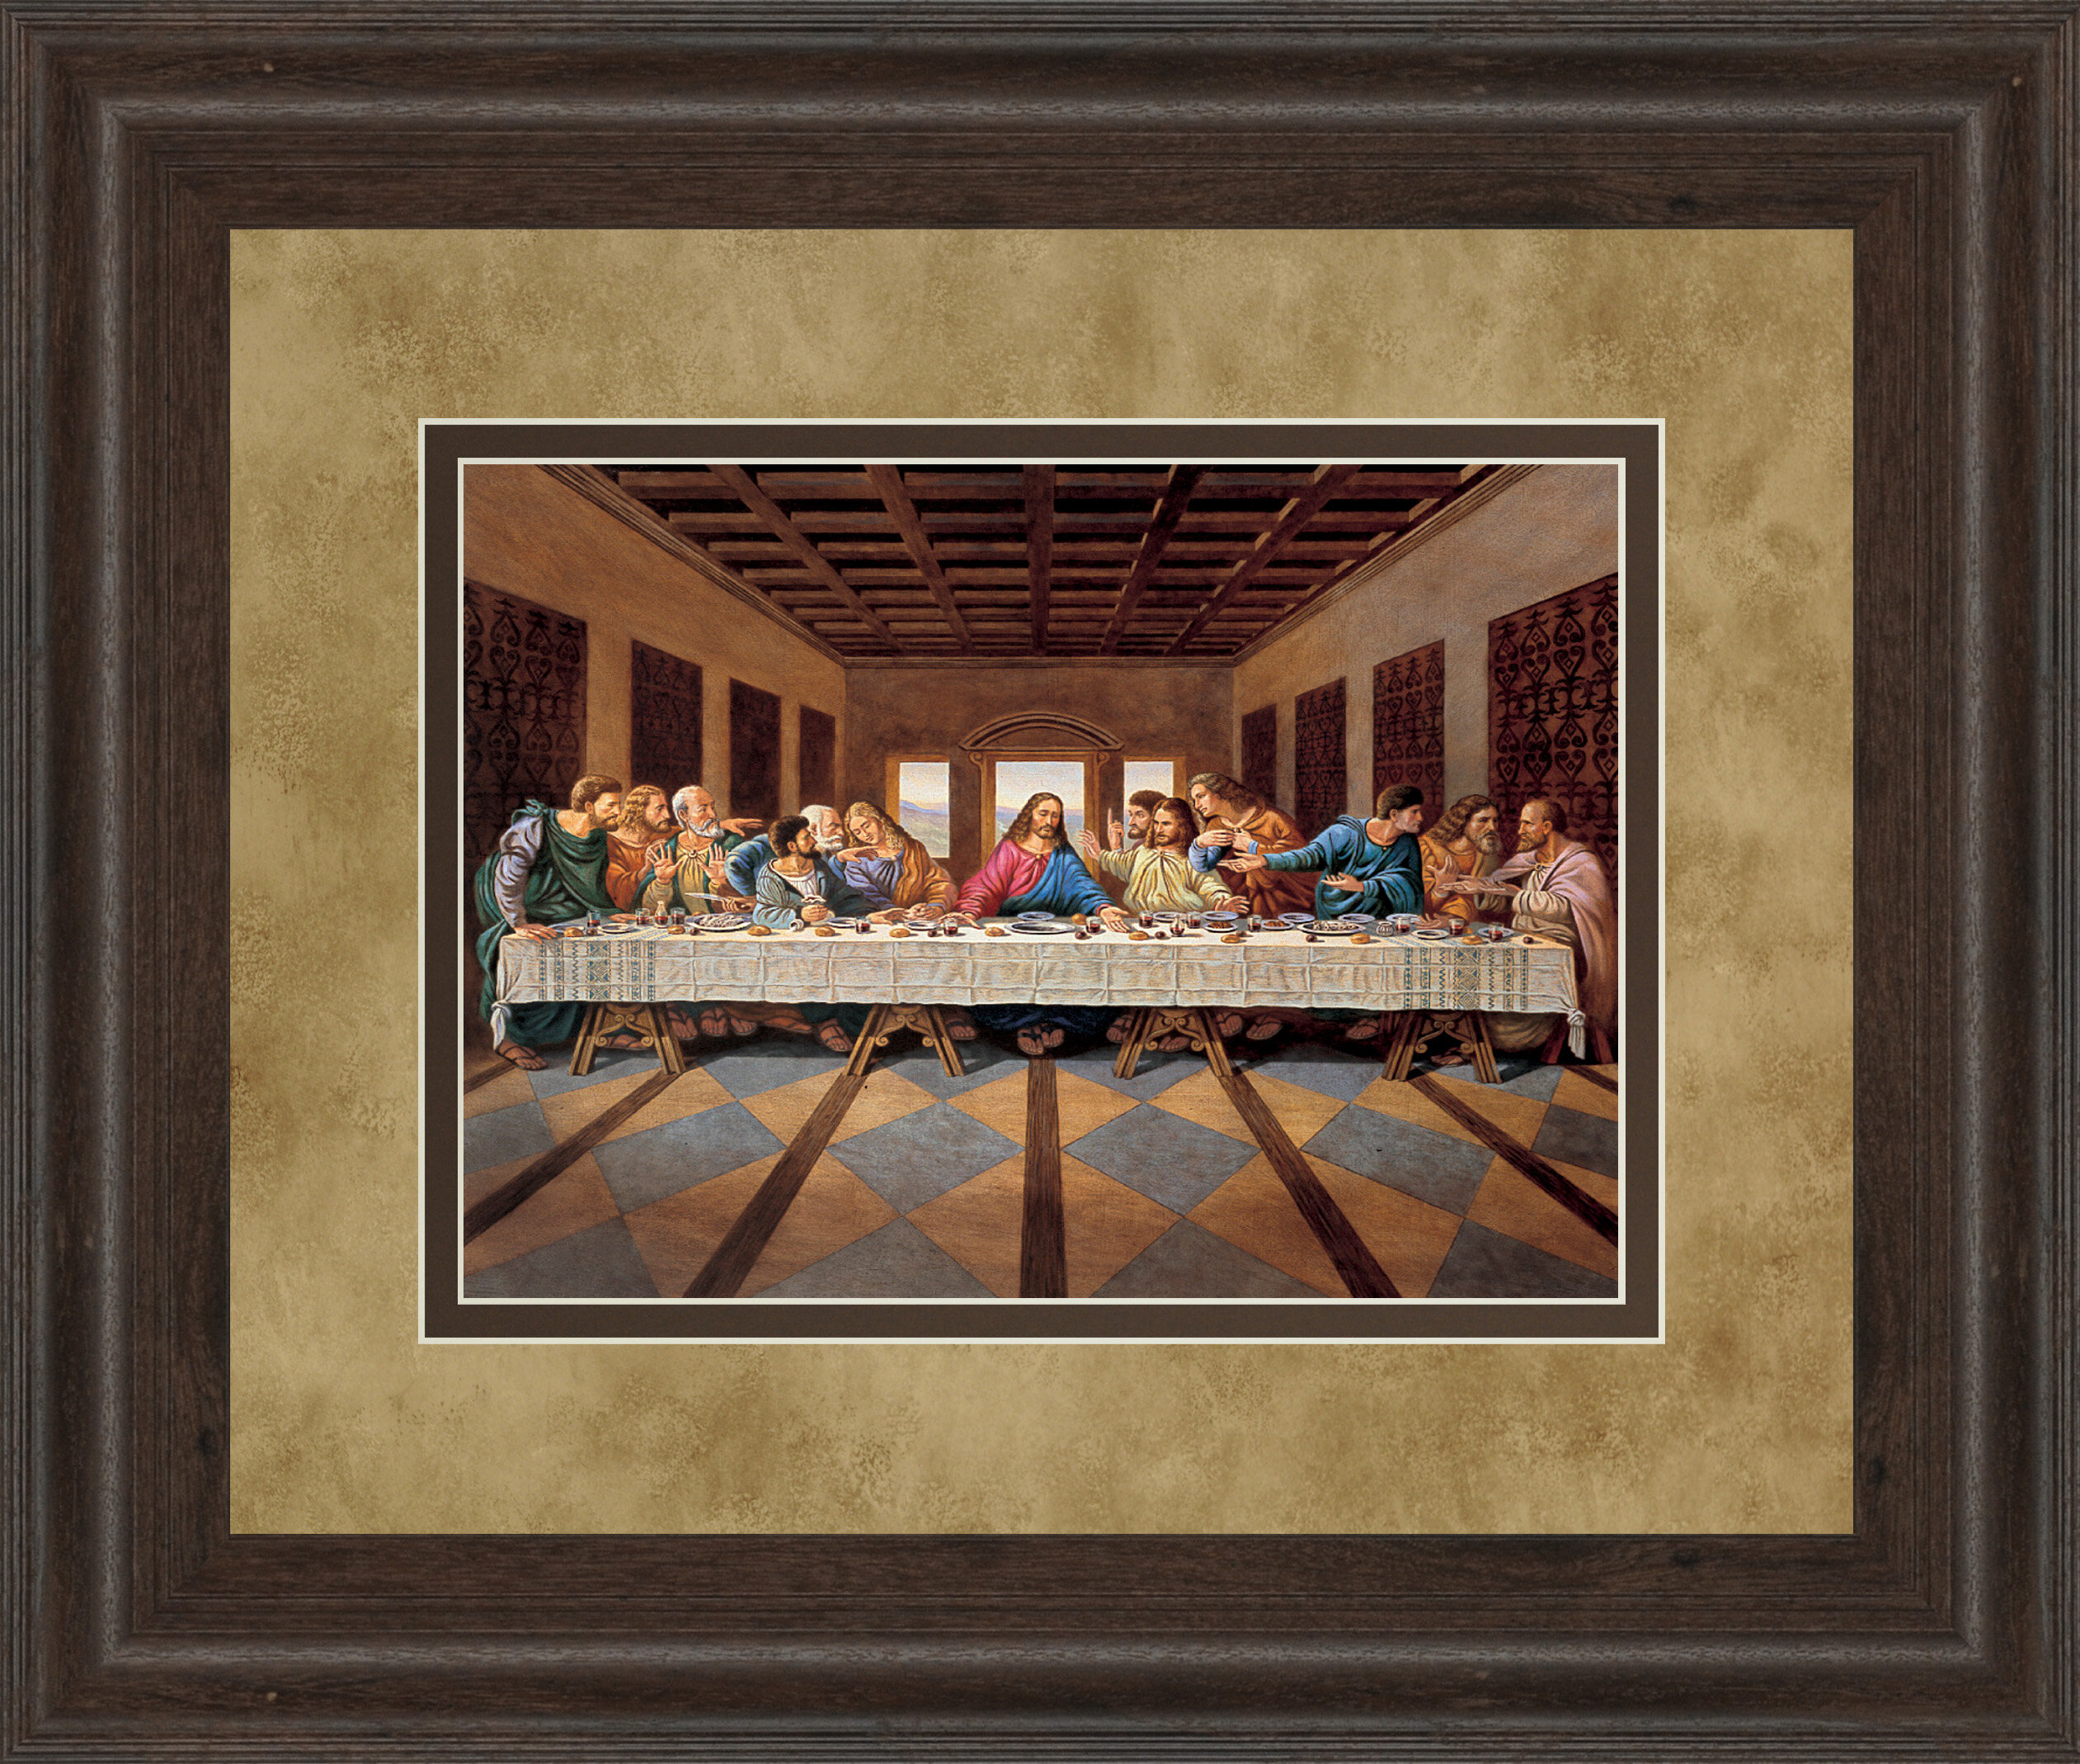 ClassyArtWholesalers Last Supper Framed Painting Print | Wayfair